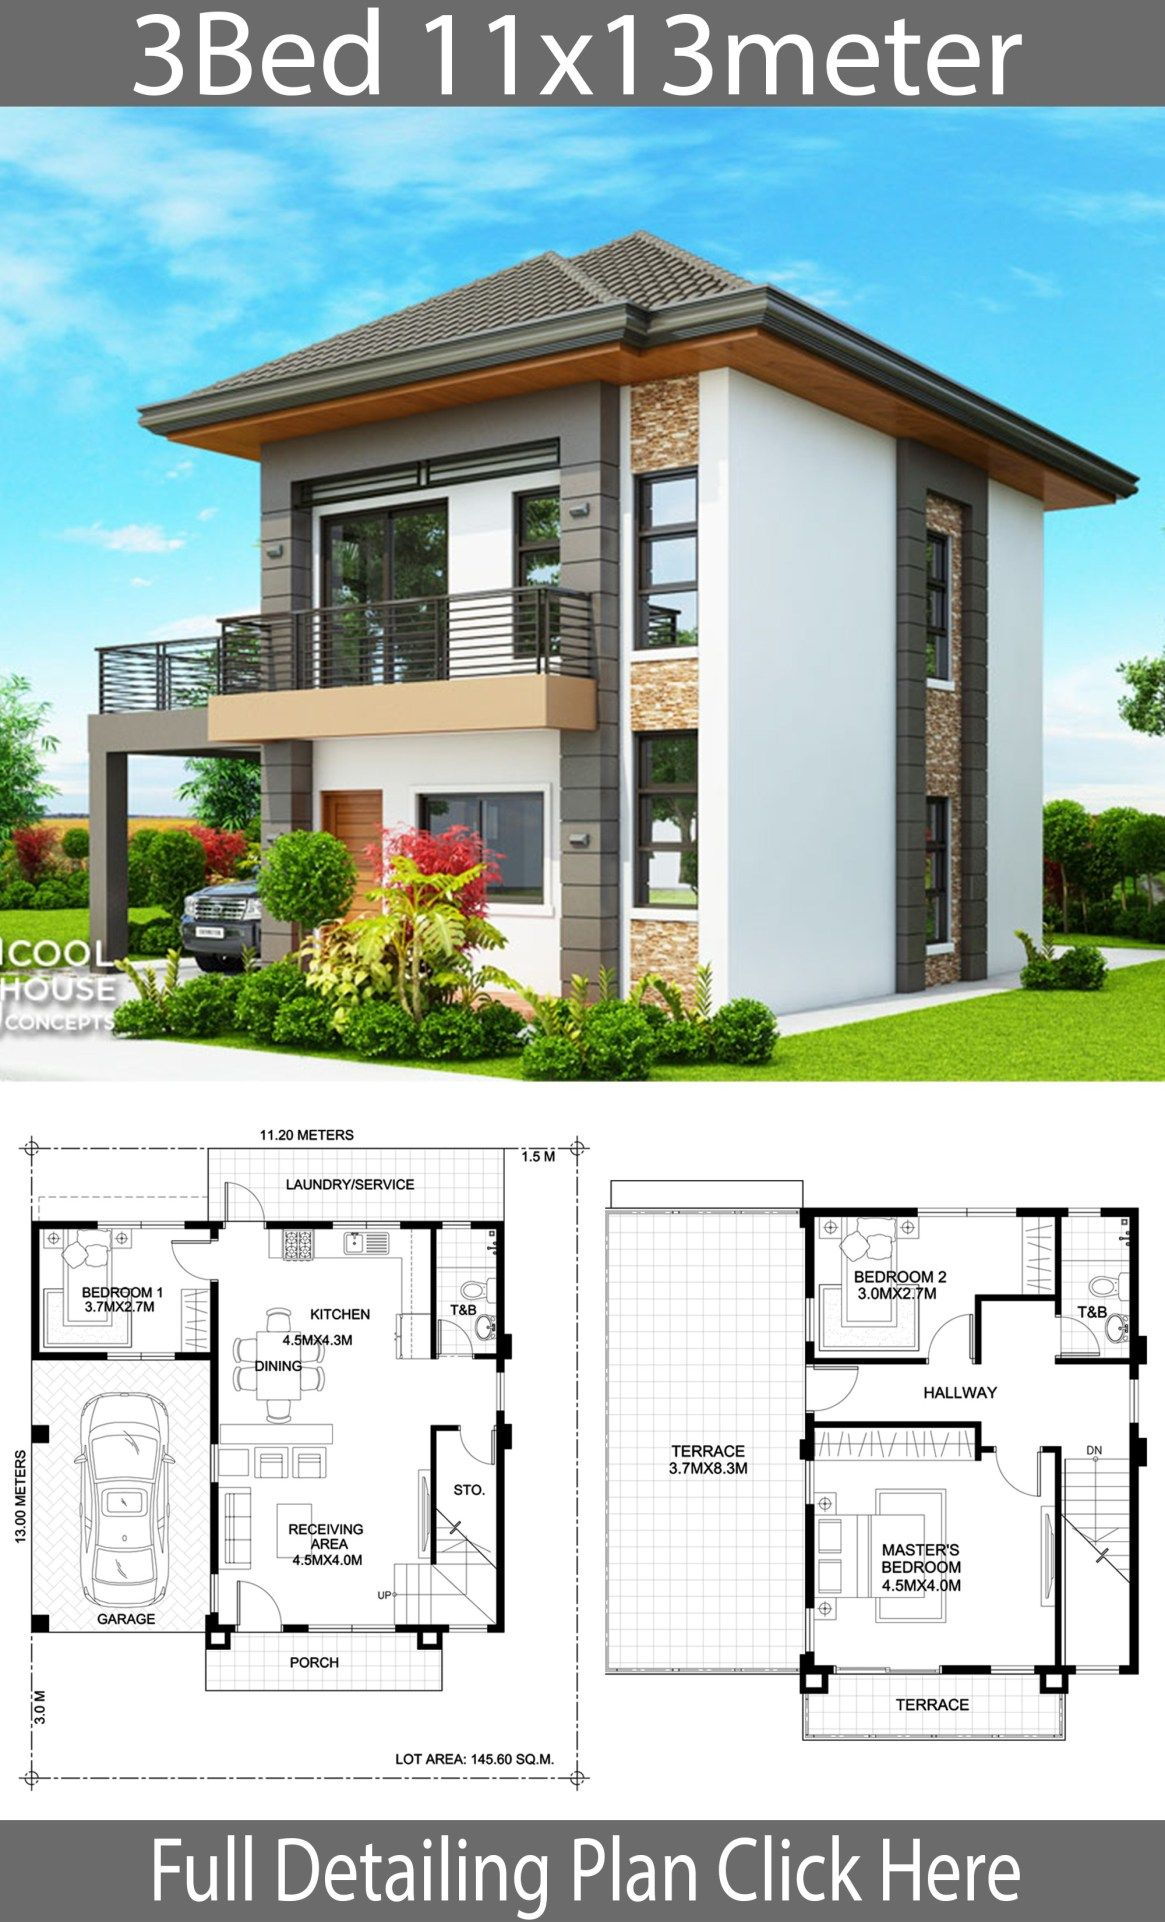 Home Design Plan 11x13m With 3 Bedrooms Home Design With Plansearch Philippines House Design House Construction Plan Beautiful House Plans